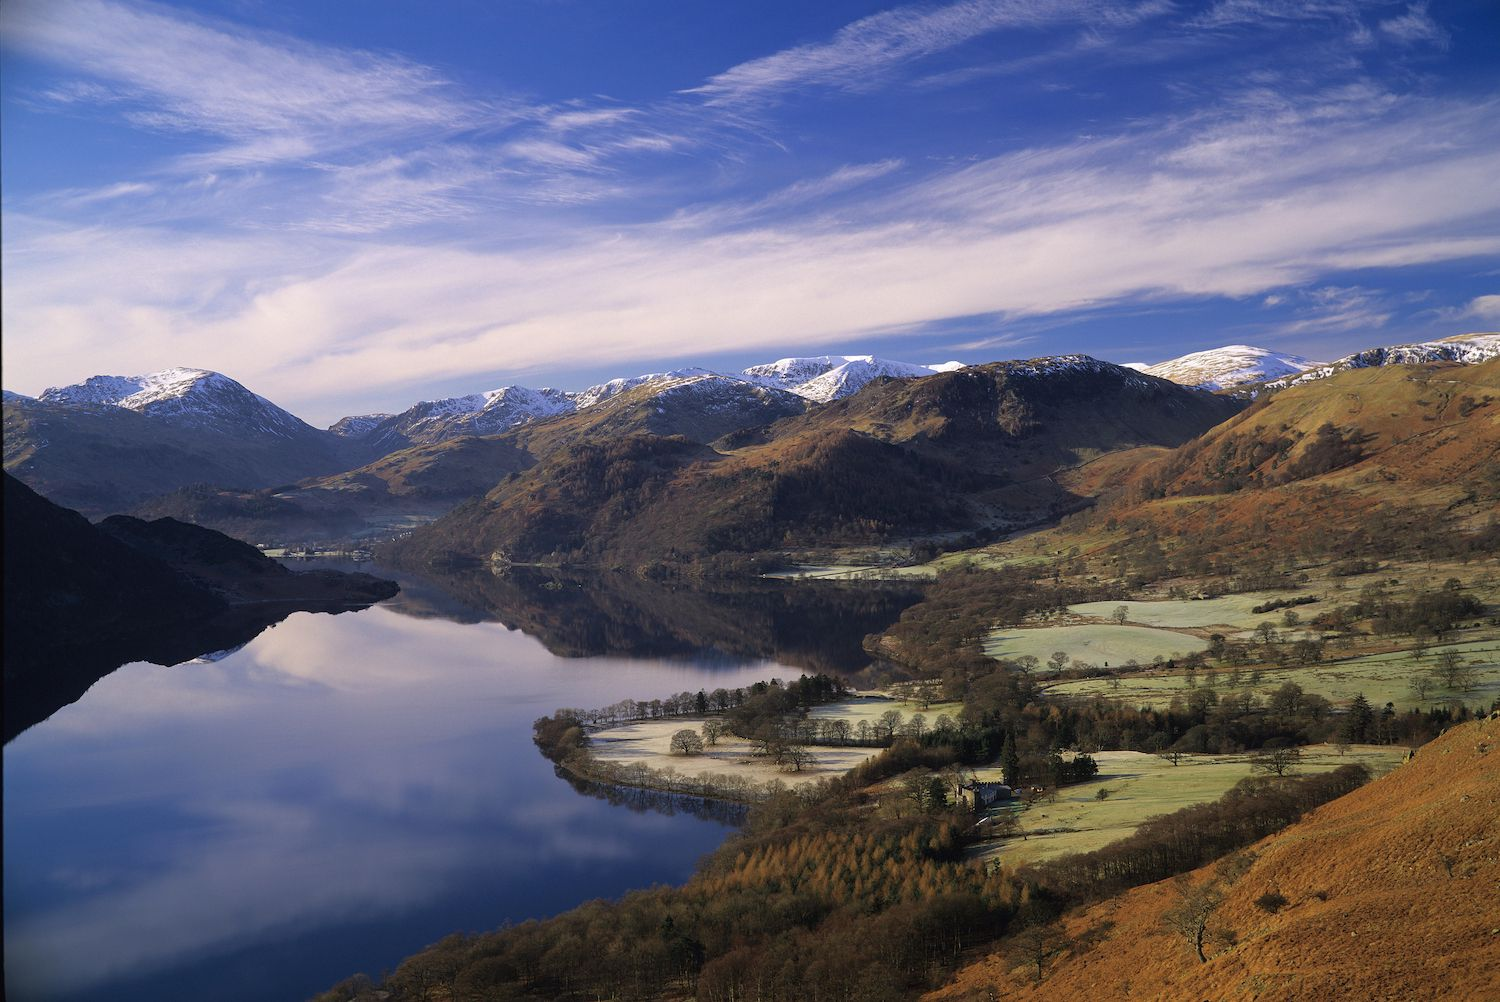 Campsites in the Lake District